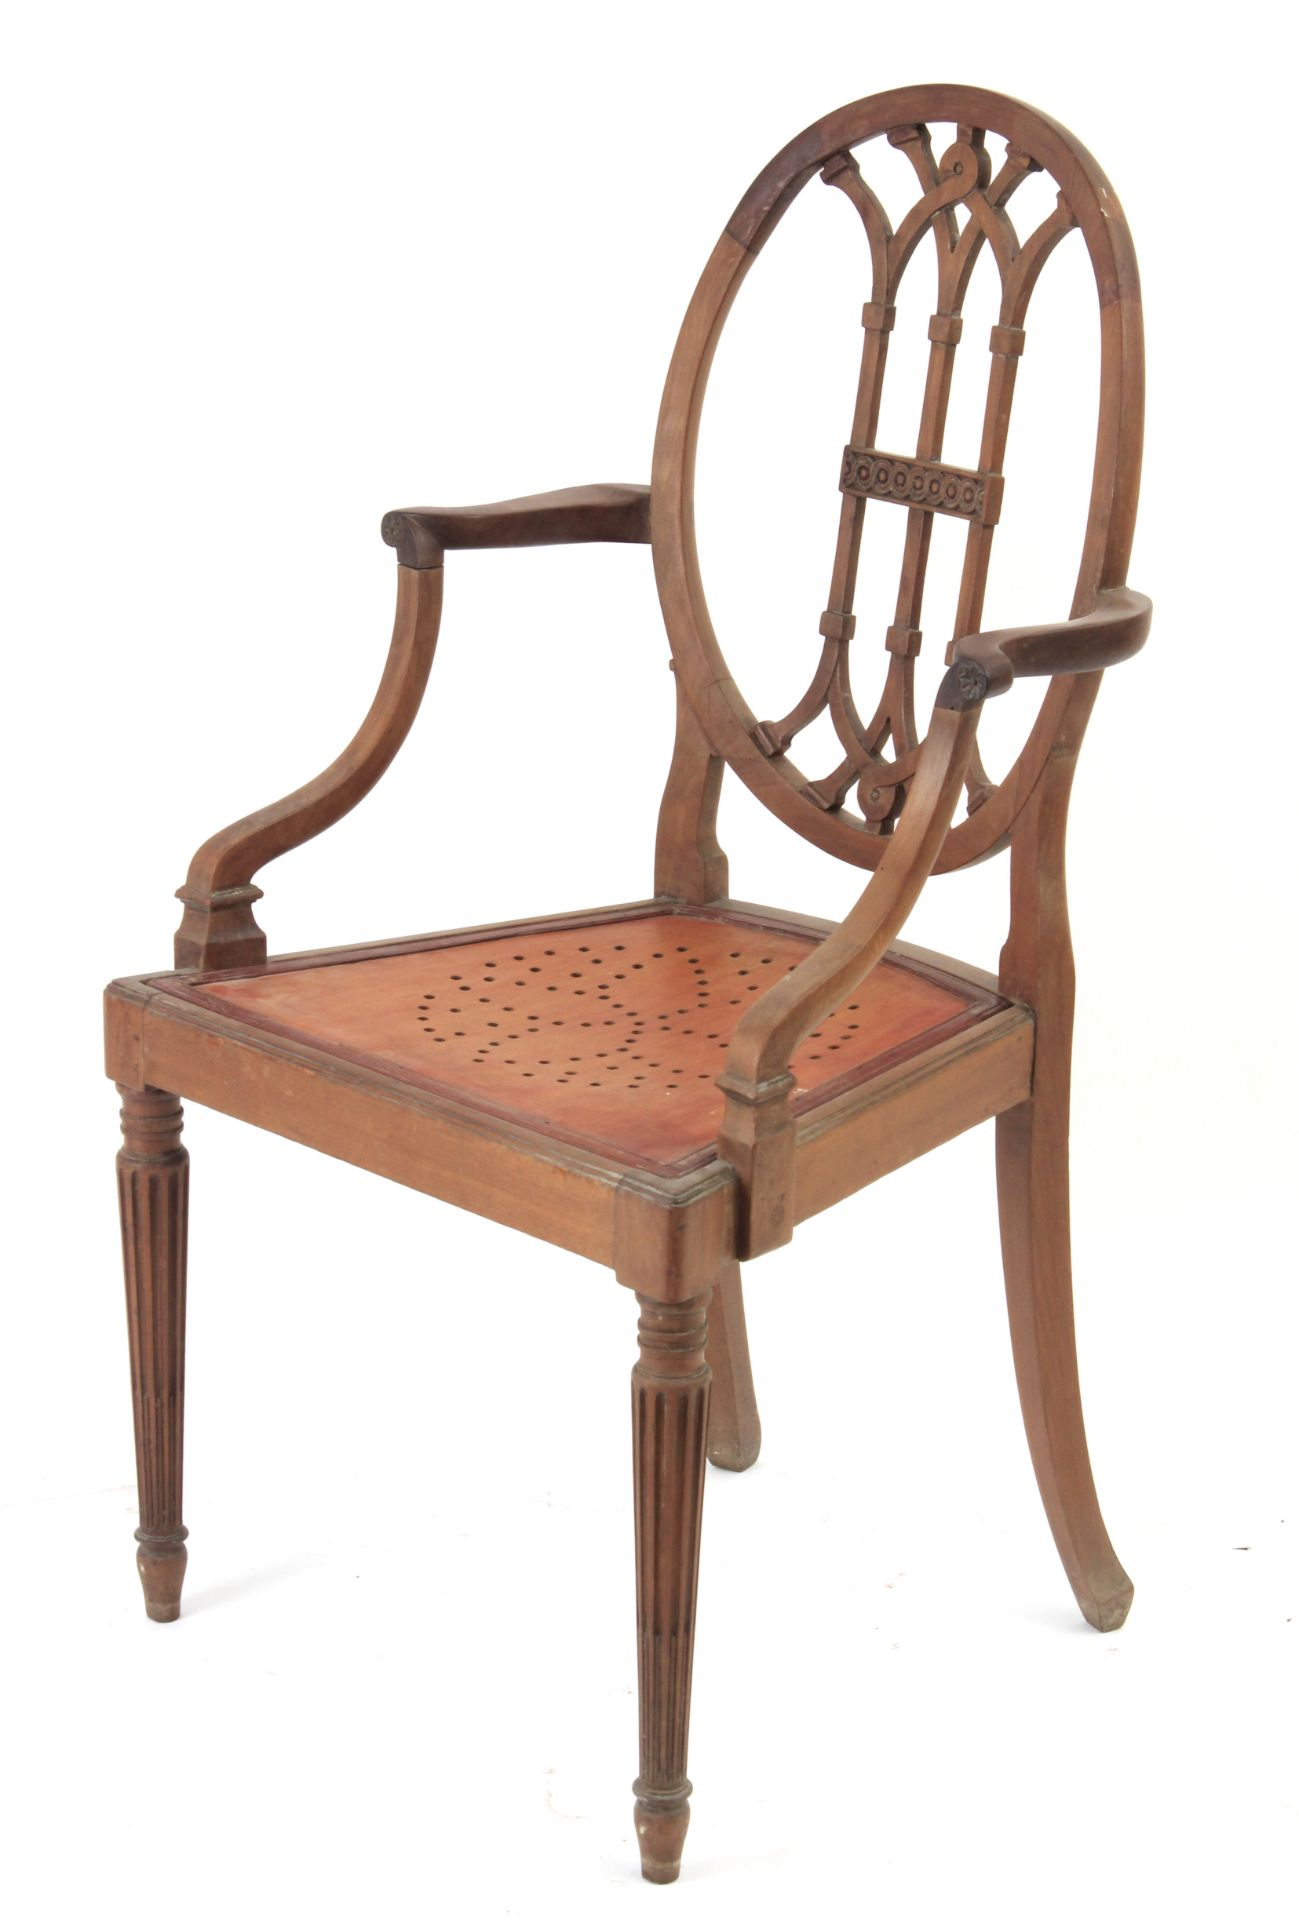 A pair of 19th century mahogany ship chairs - Bild 4 aus 5